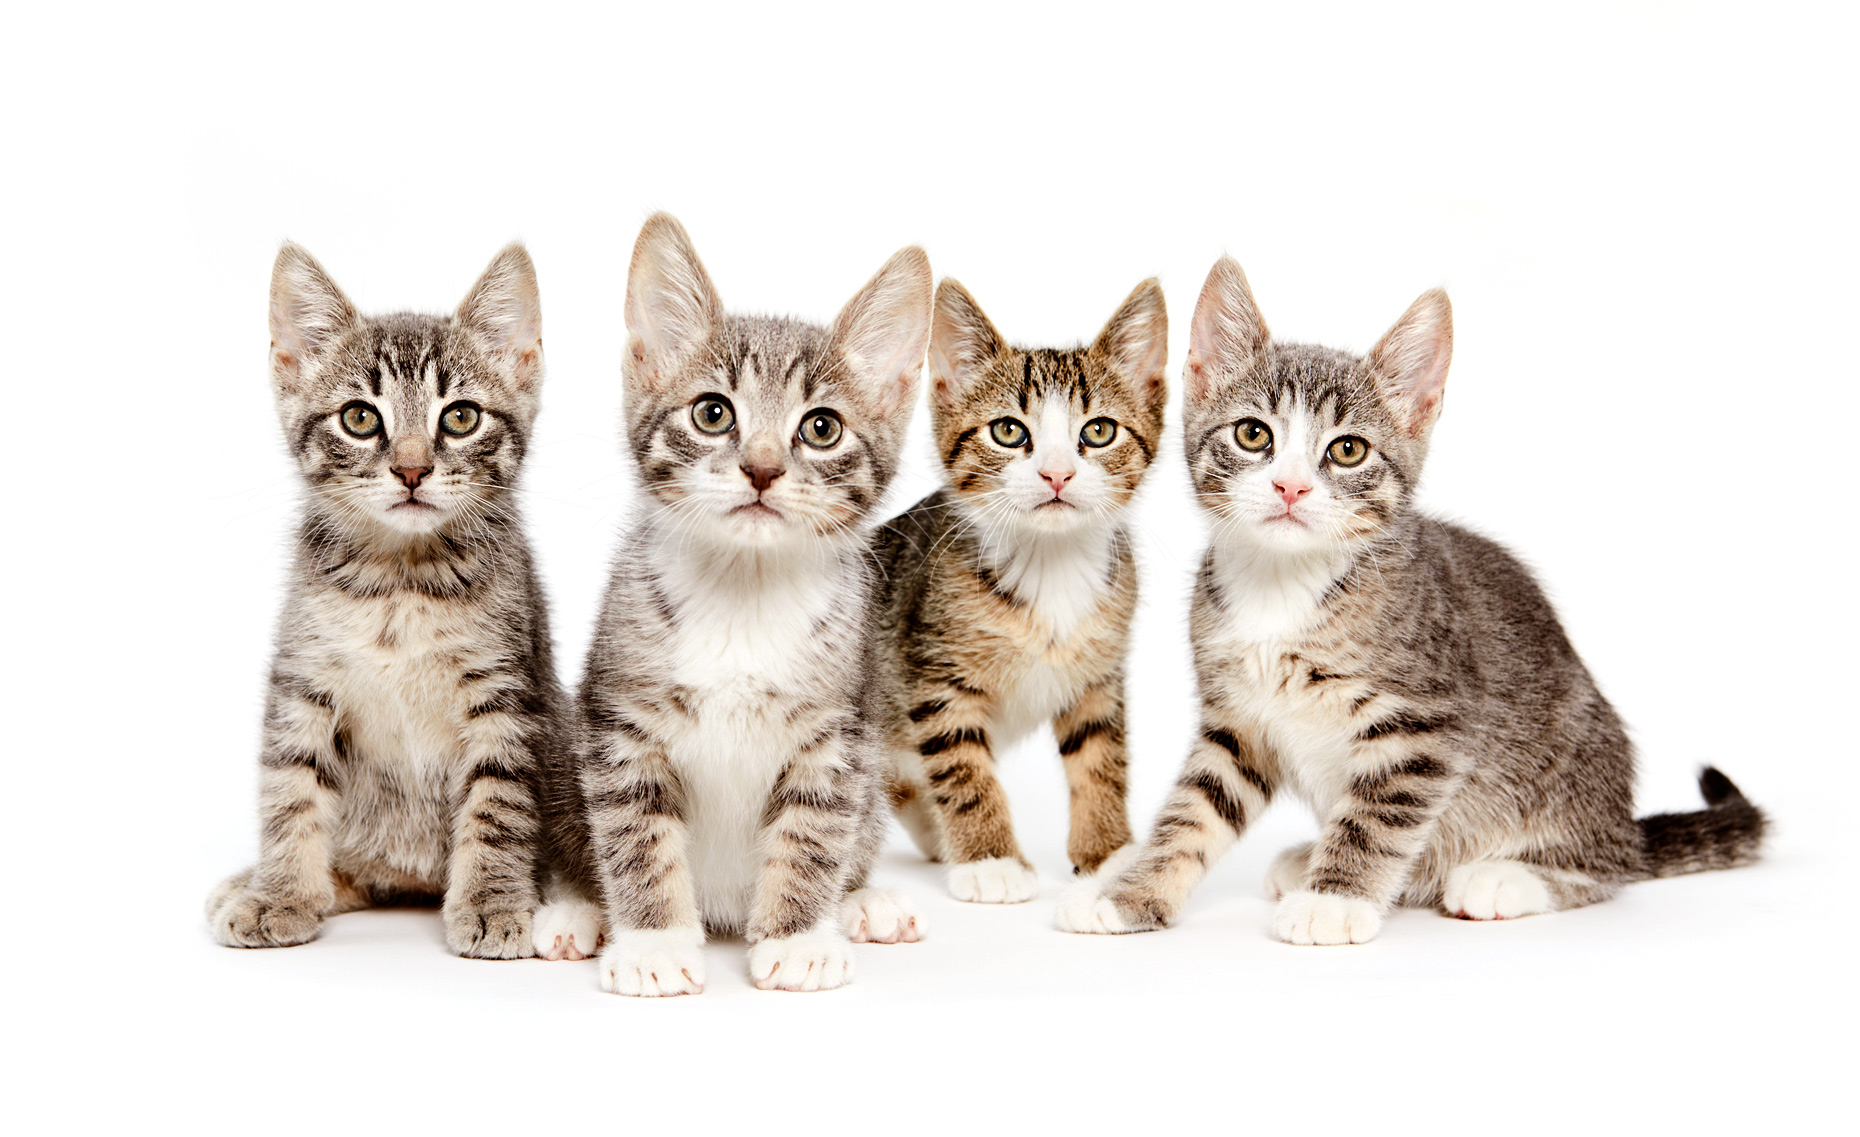 Line of four kittens